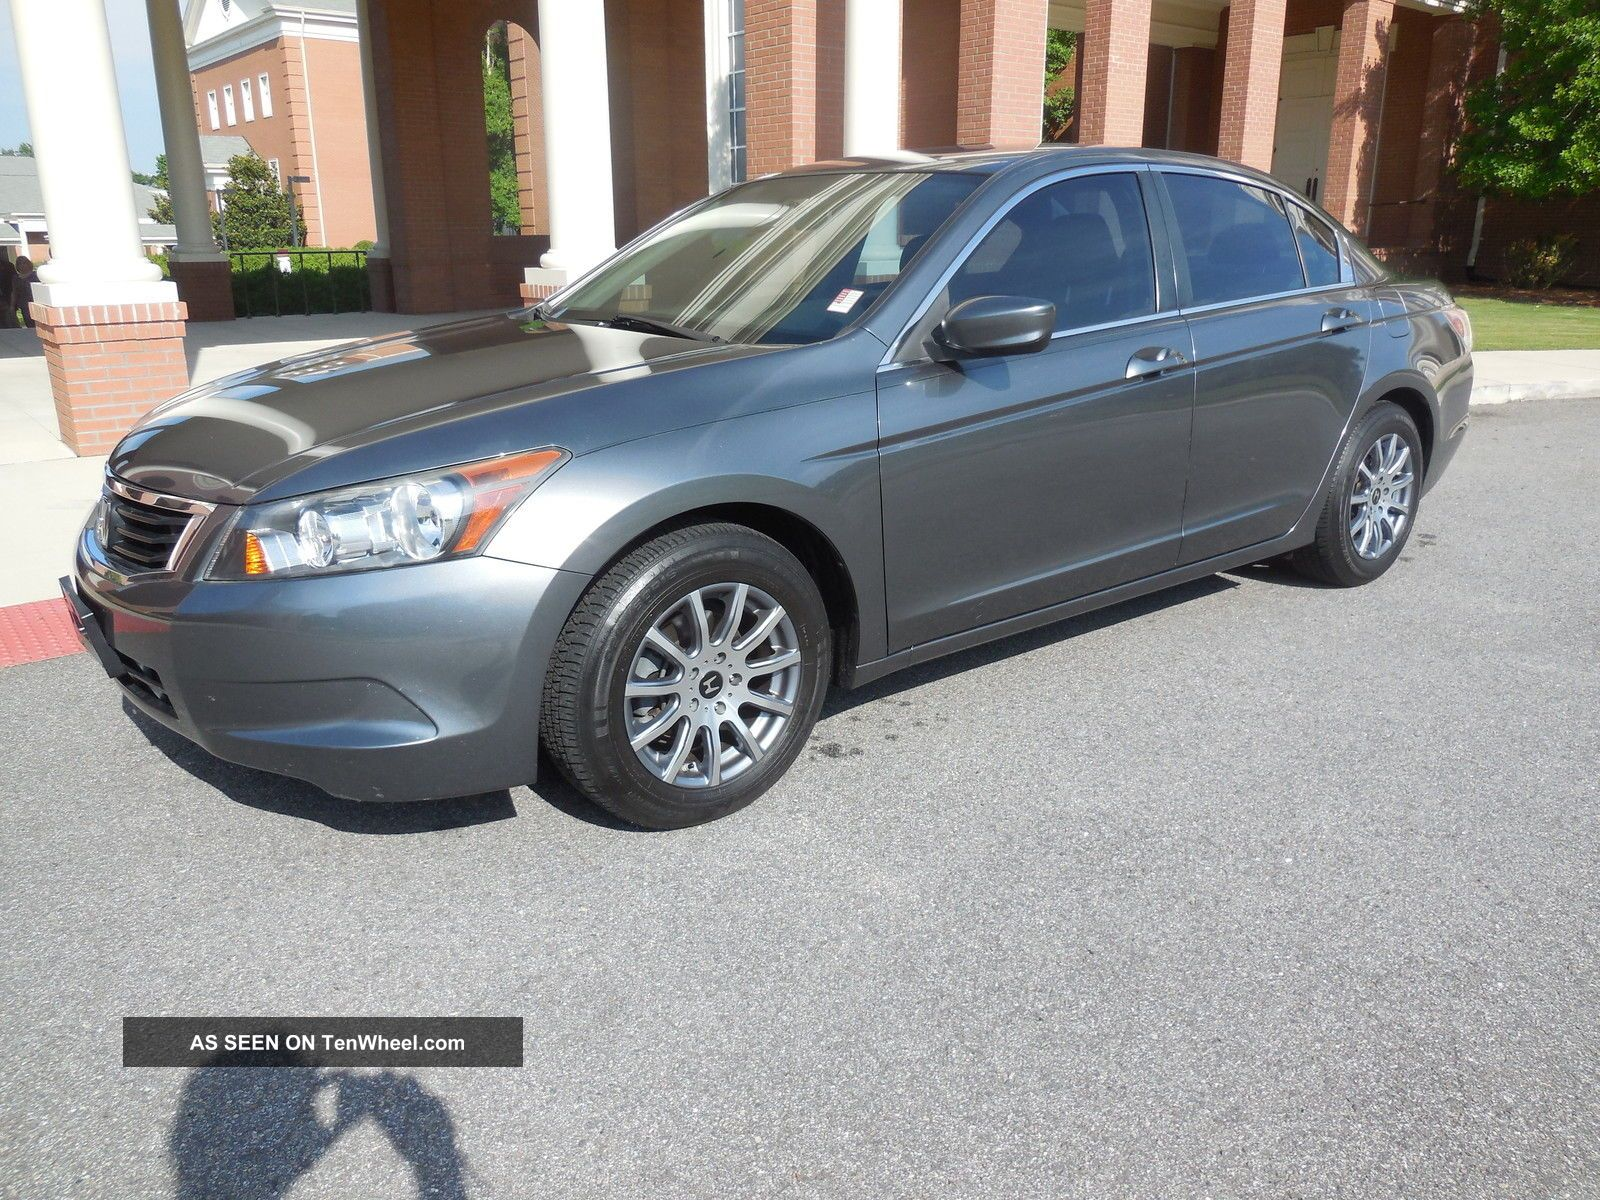 2008 Honda Accord Accord photo